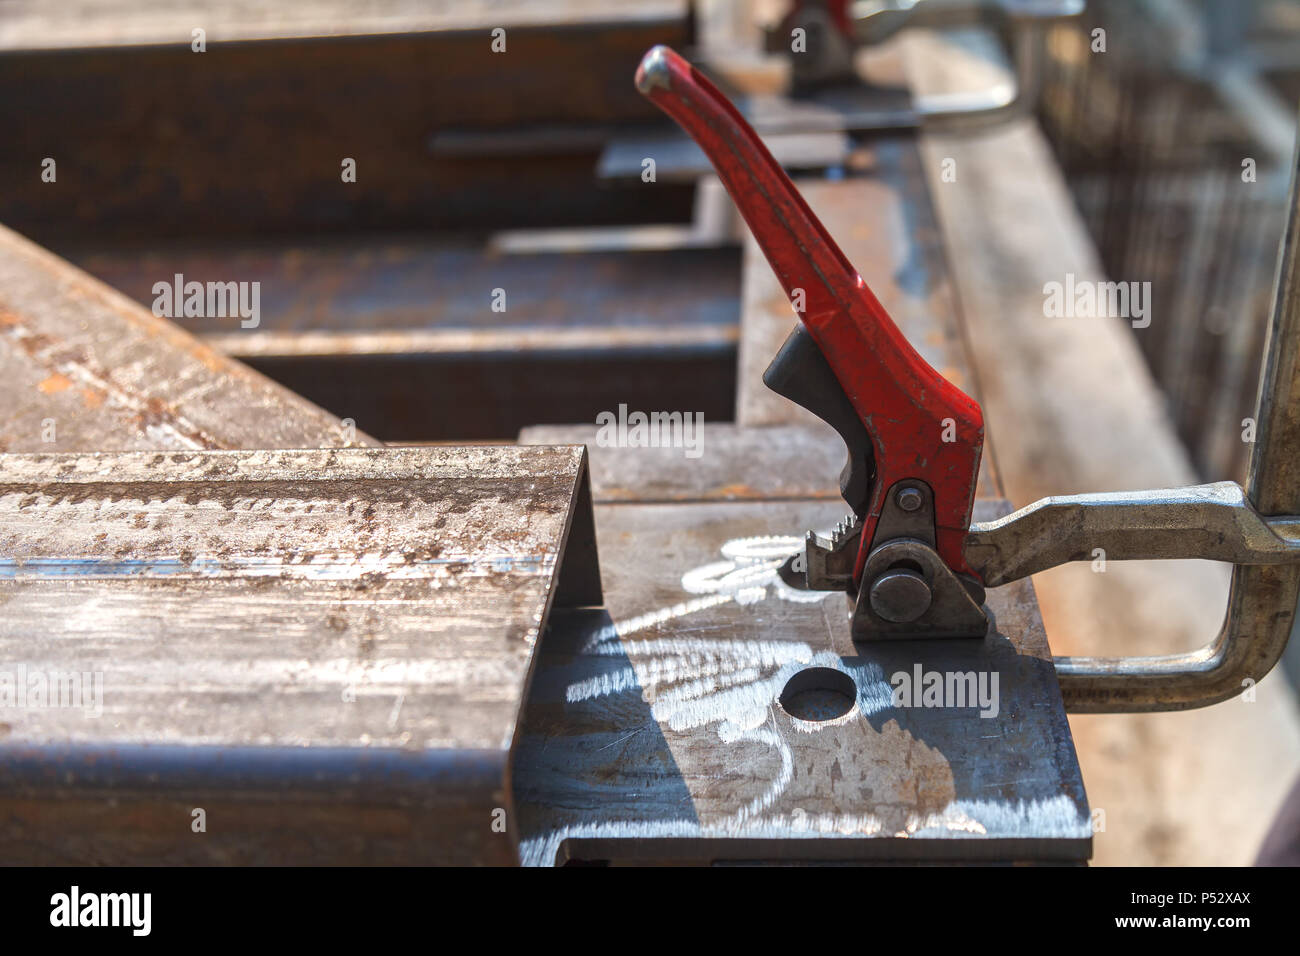 The clamping metal clamp with a red handle is mounted on a metal plate - Stock Image